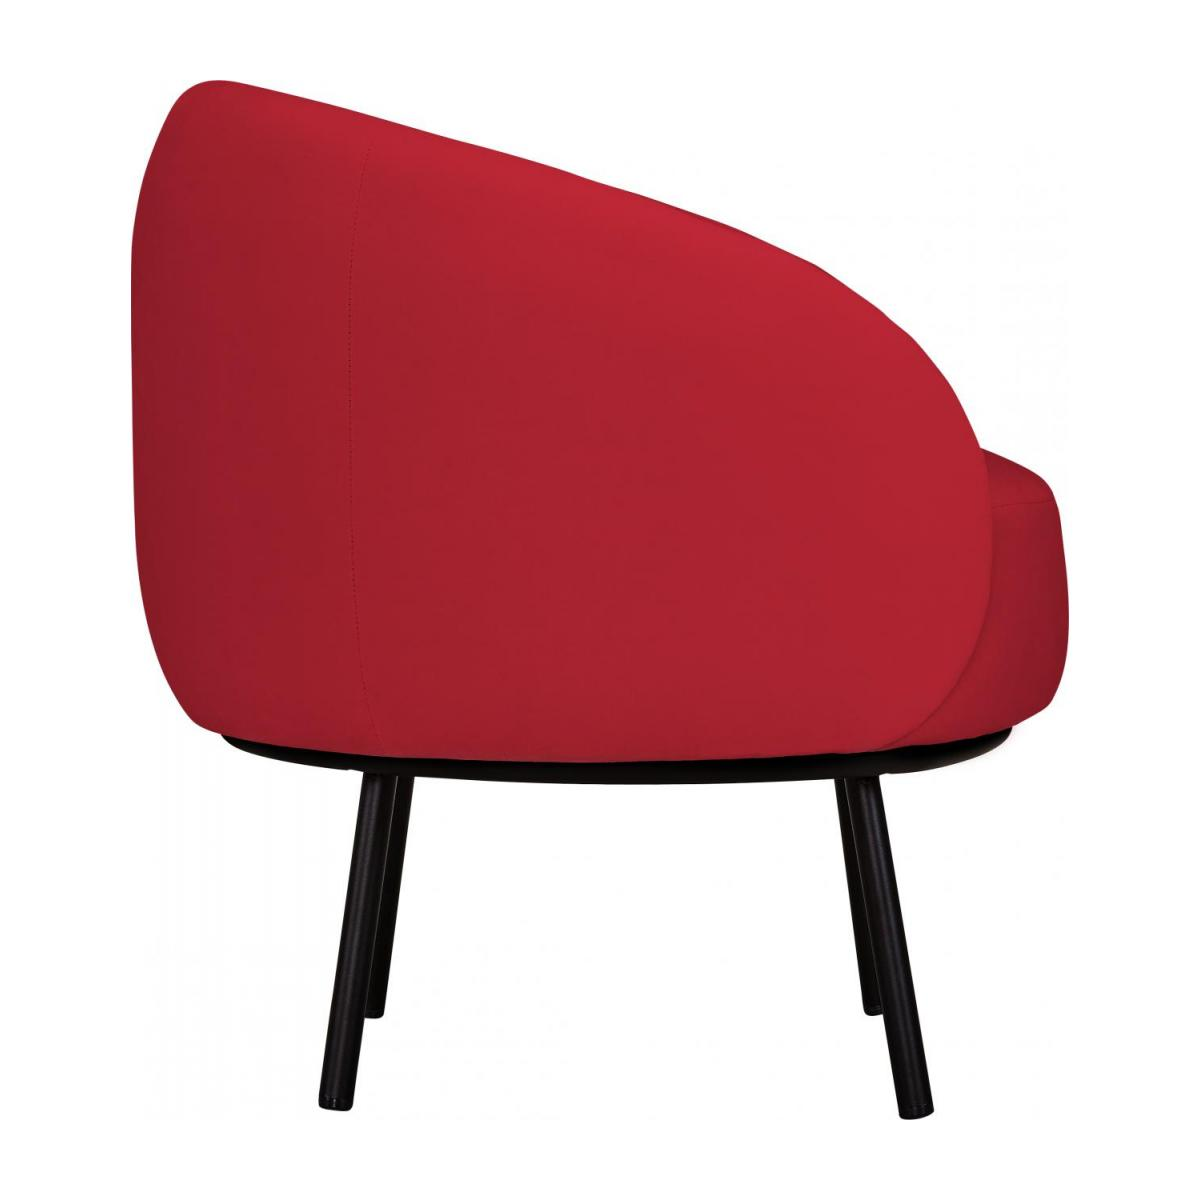 Fauteuil en velours - Rouge - Design by Adrien Carvès n°4